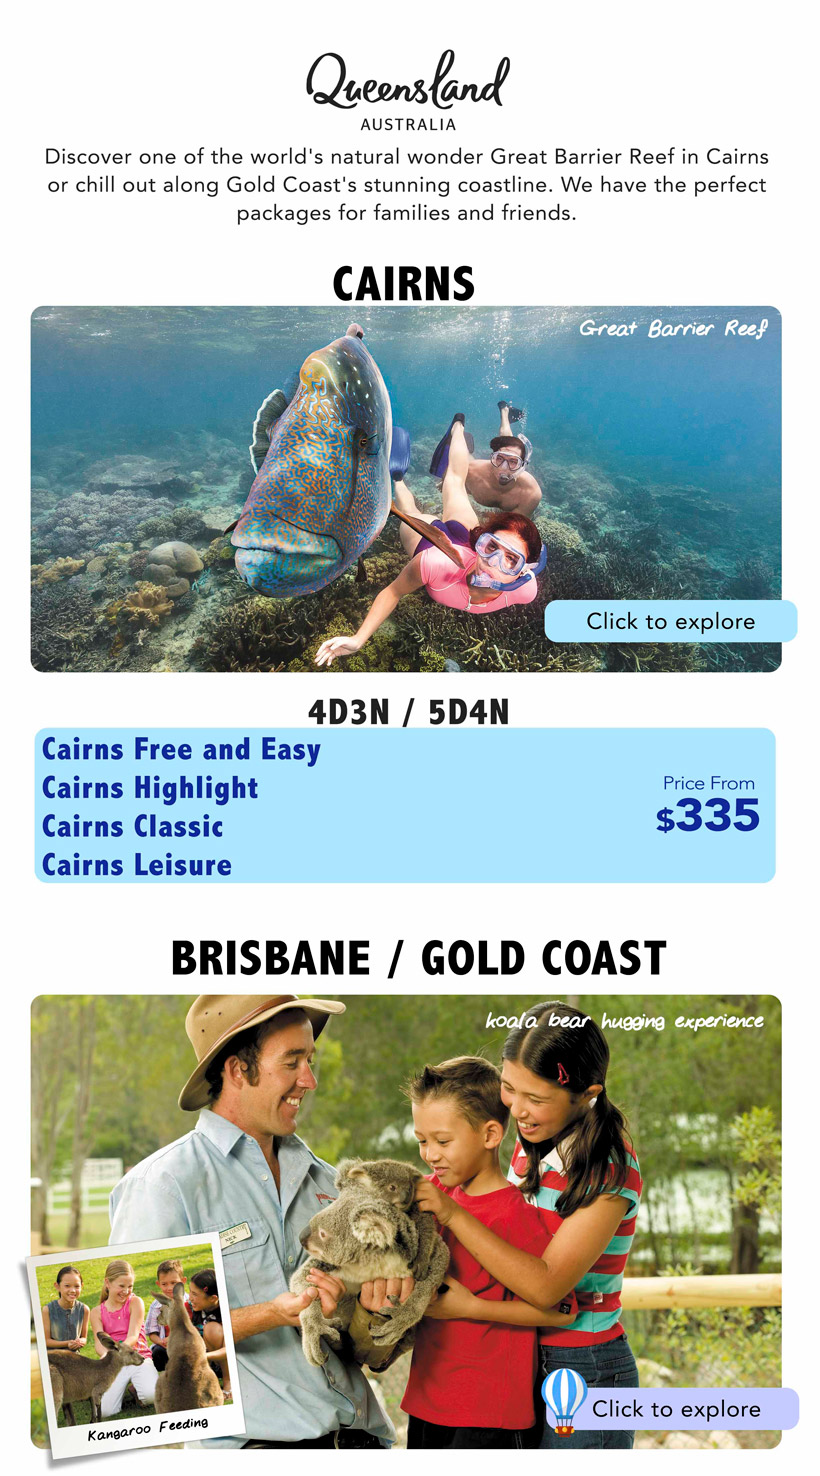 Discover GoldCoast Brisbane and Cairns 01